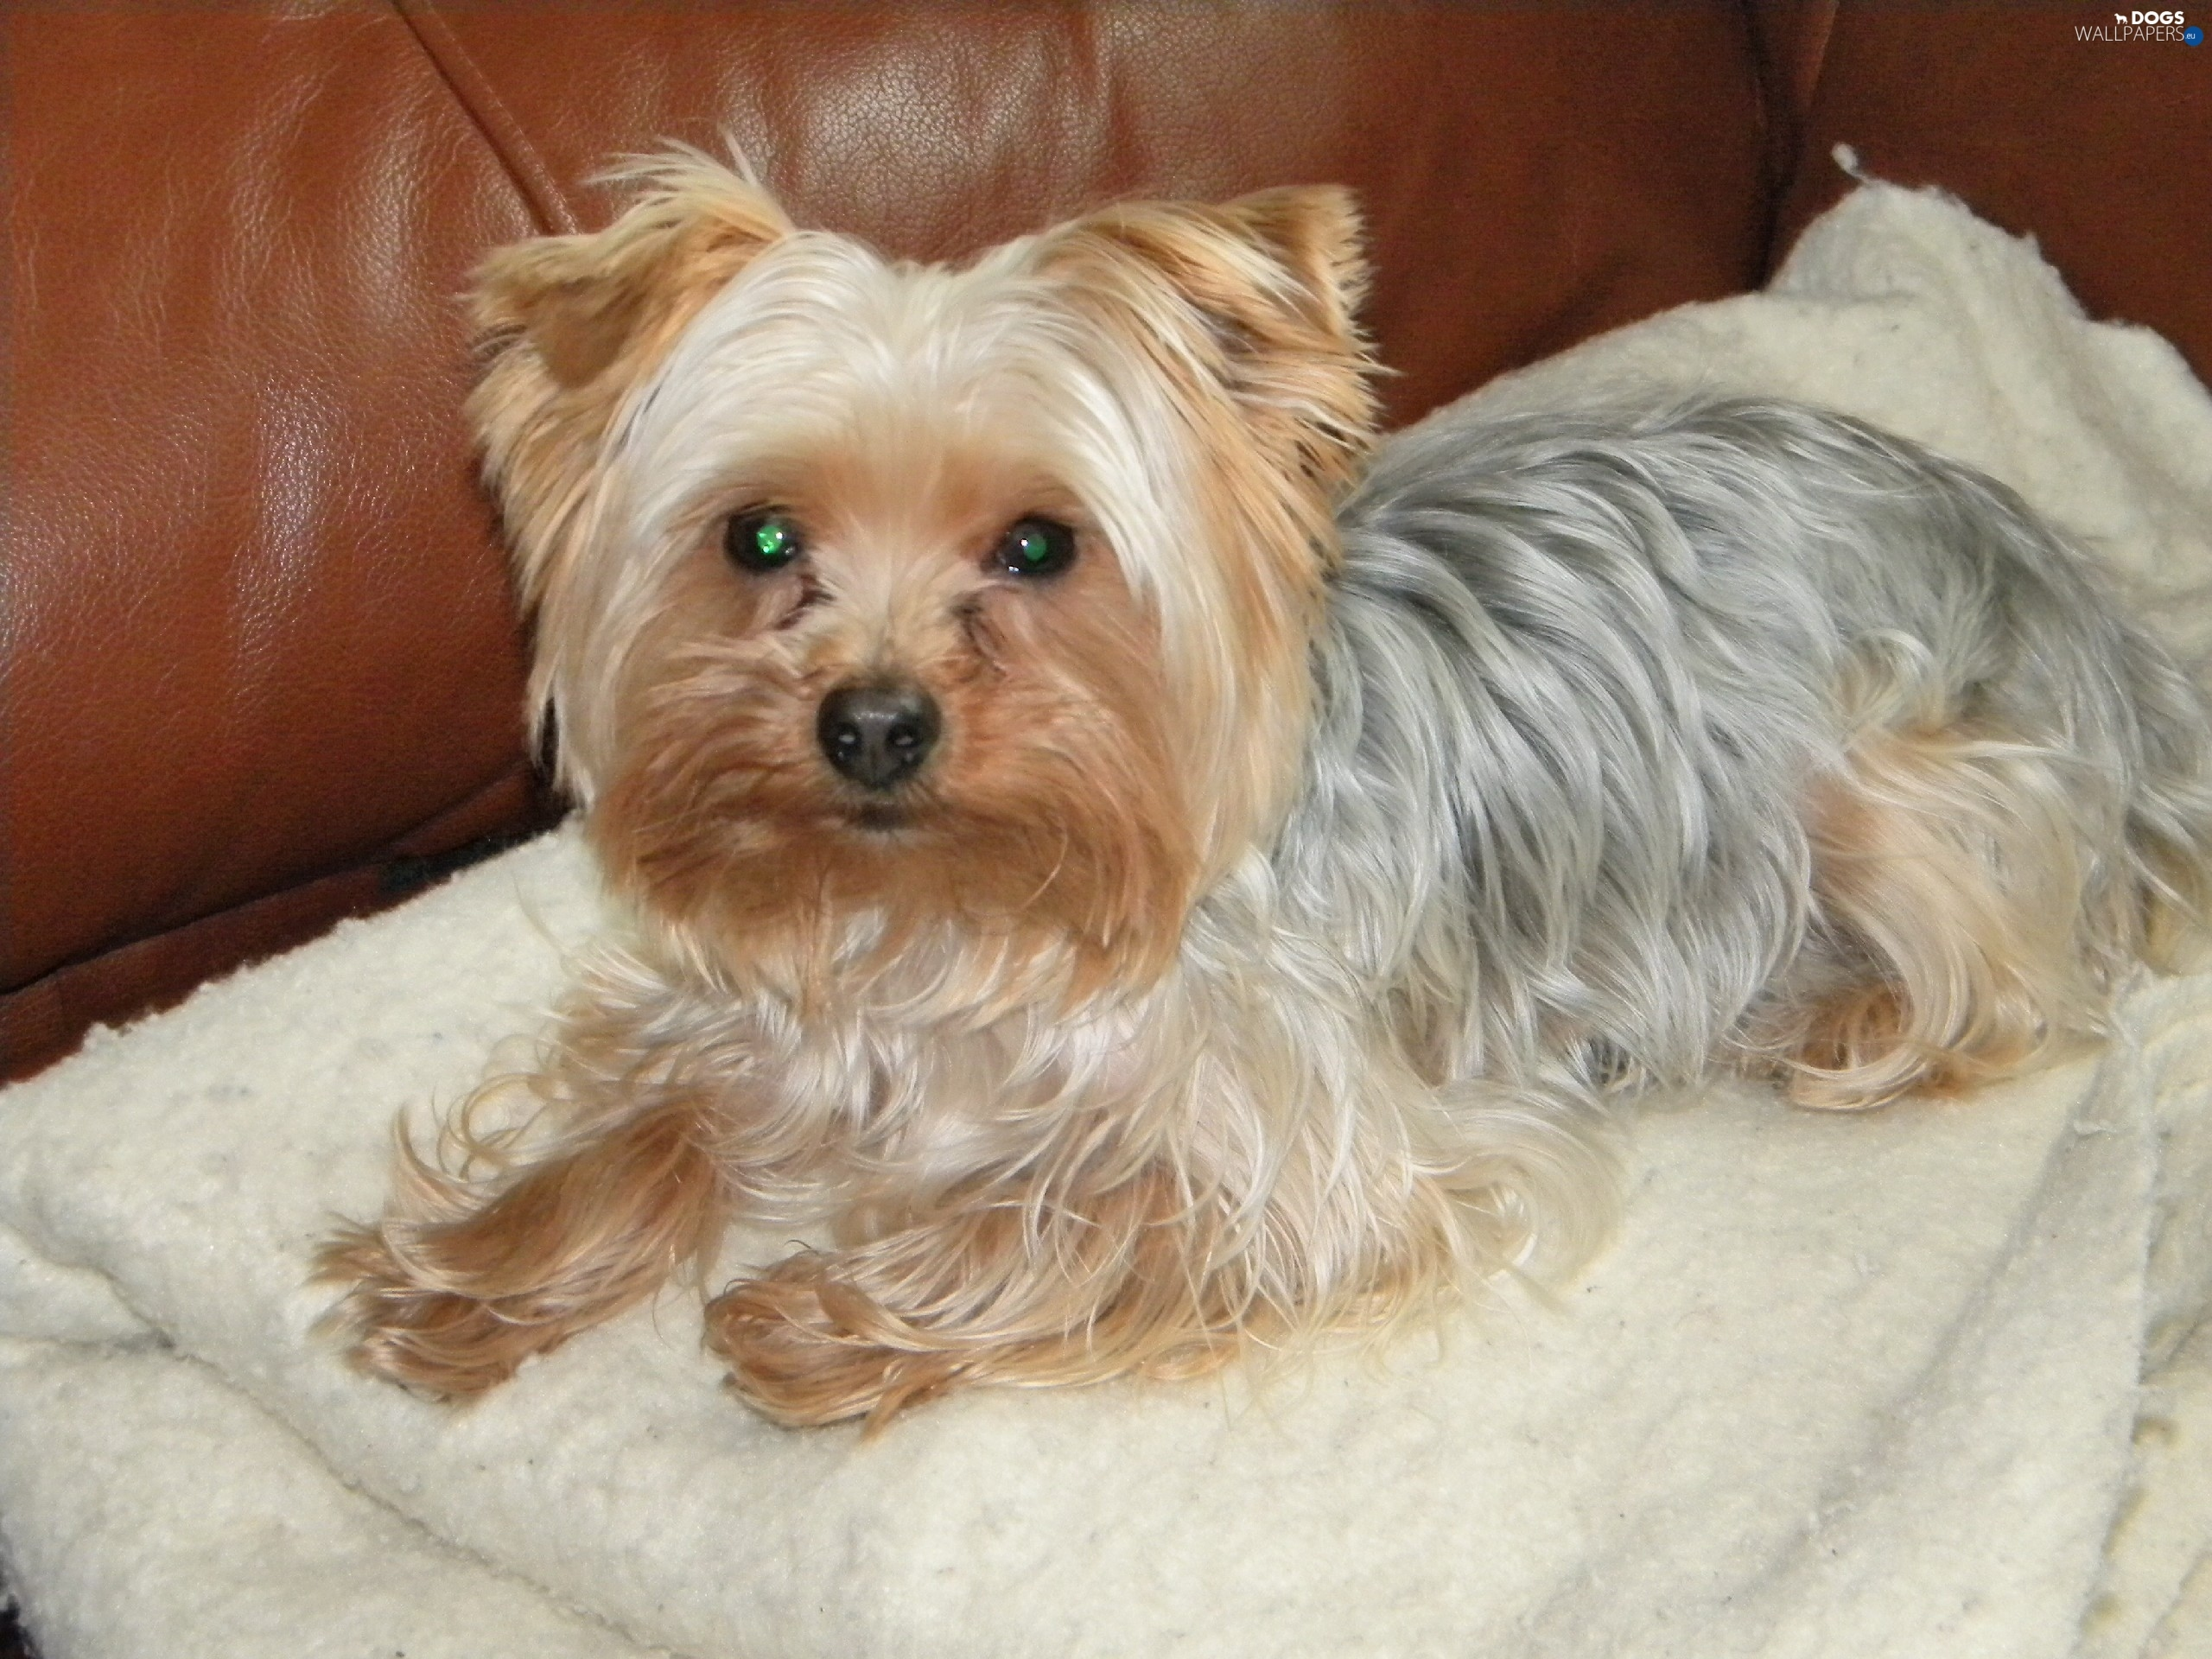 Sofa Yorkshire Terrier Dogs Wallpapers 2560x1920